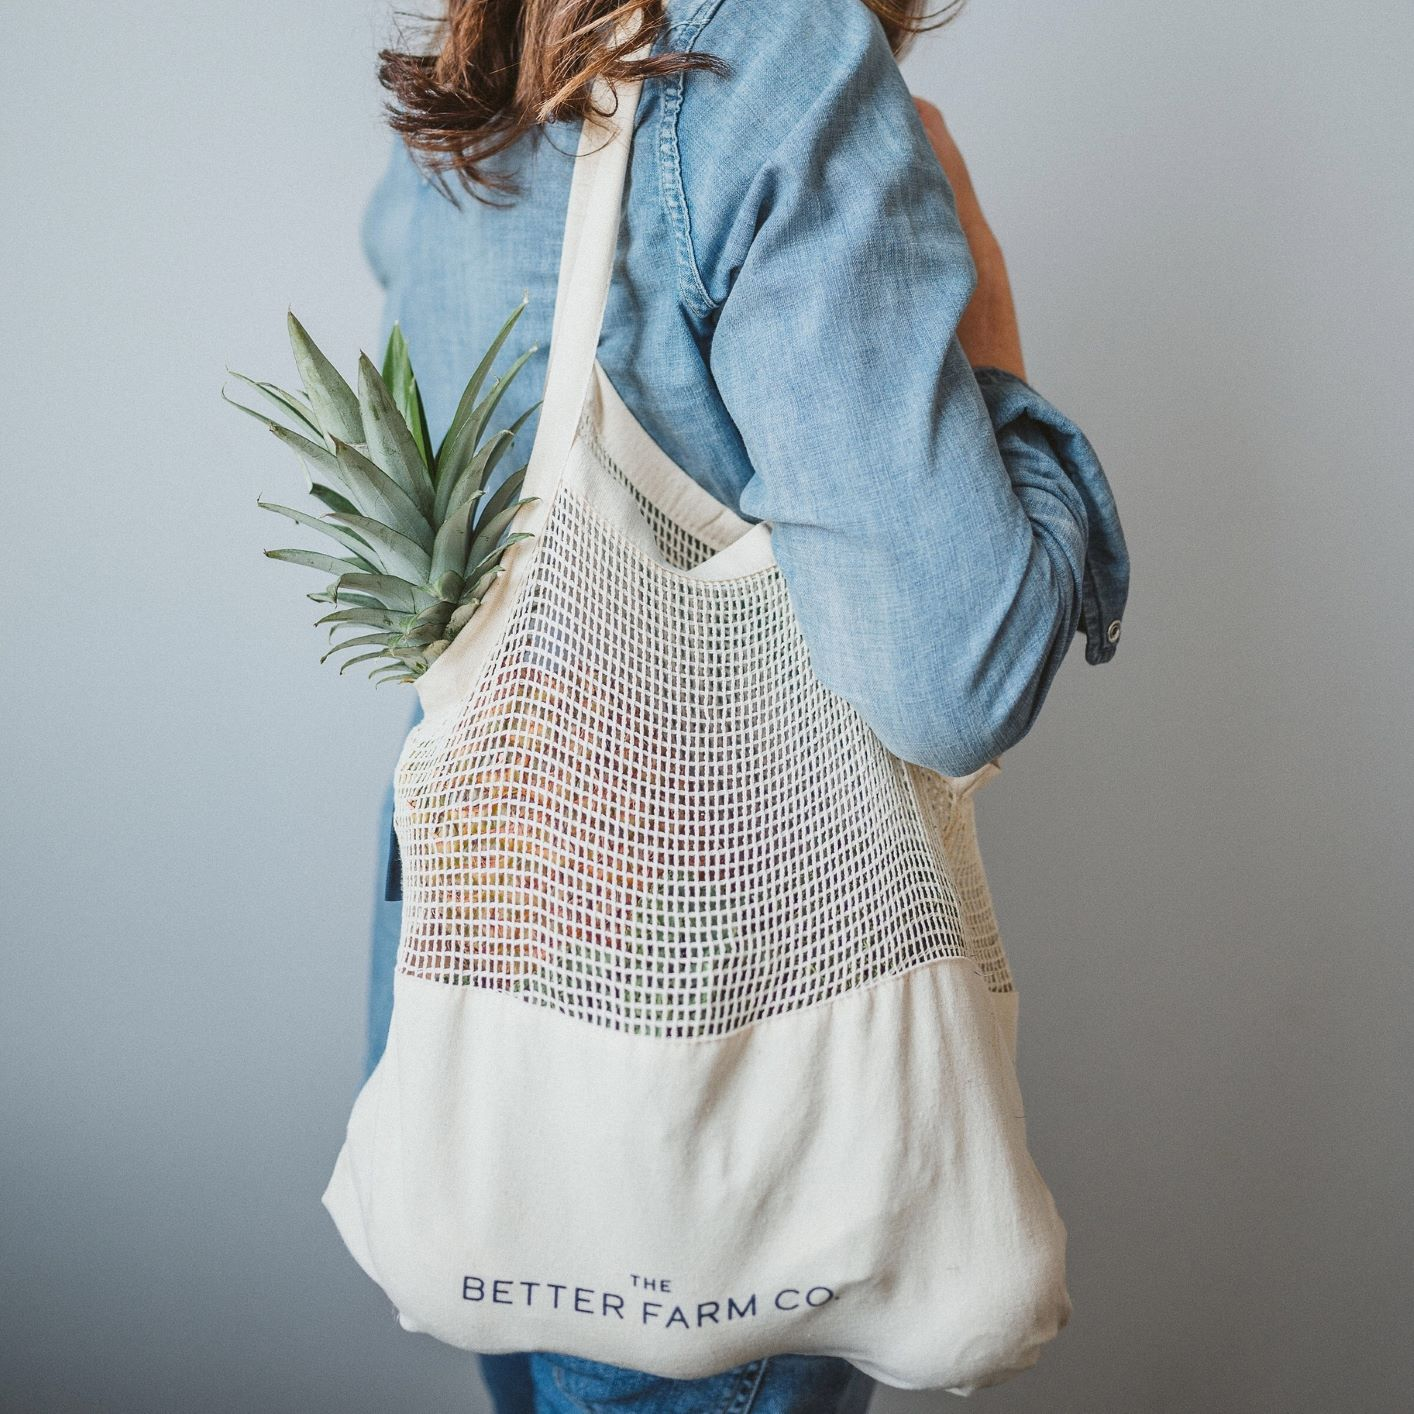 The Better Farm Co.'s The Perfect Blend Tote